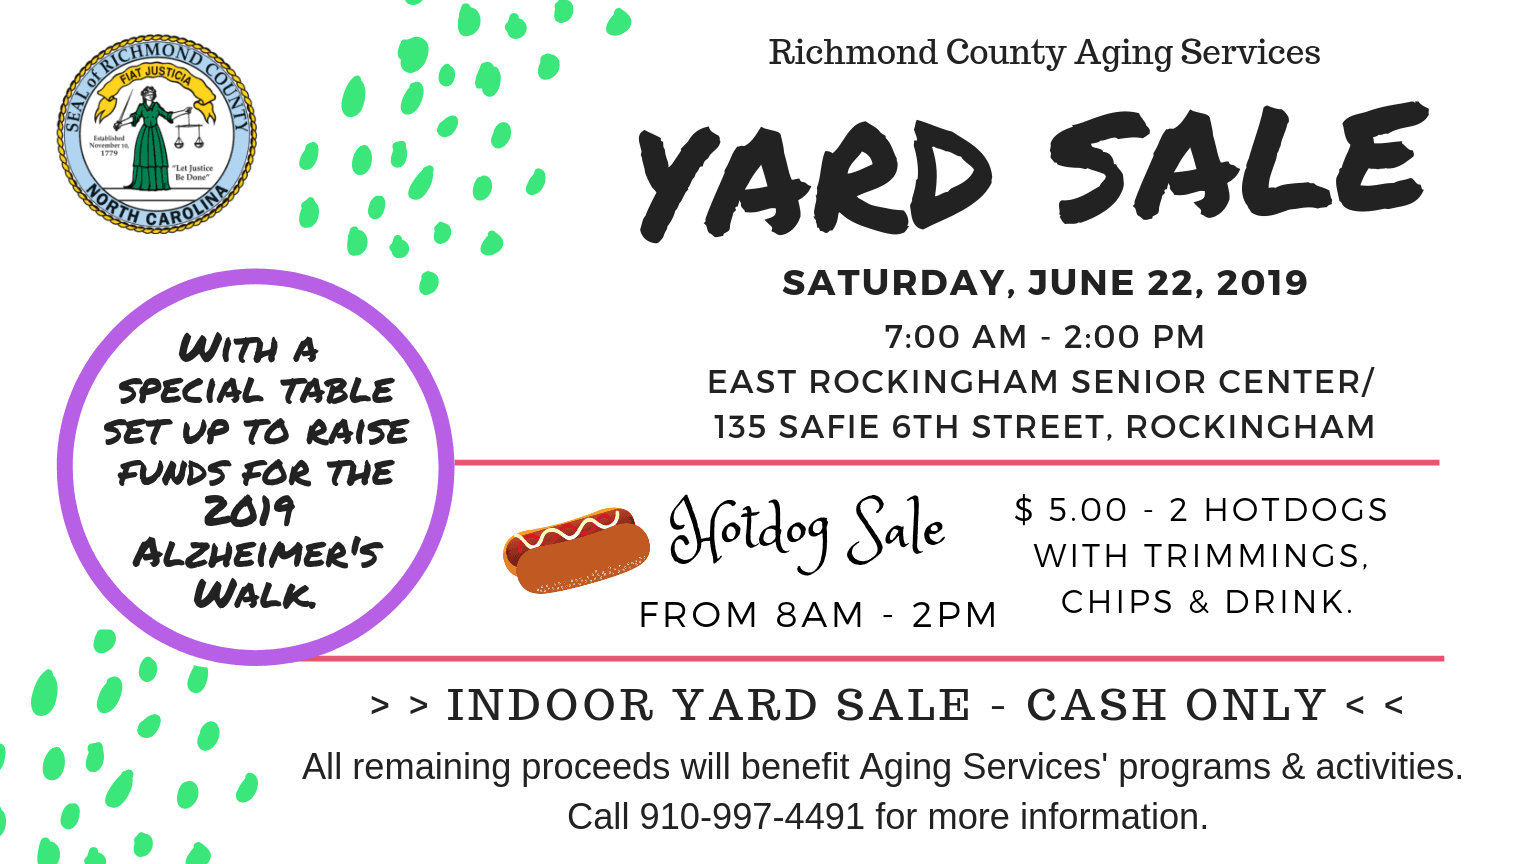 Aging Services- Yard Sale and Hotdog Sale Flyer 2019